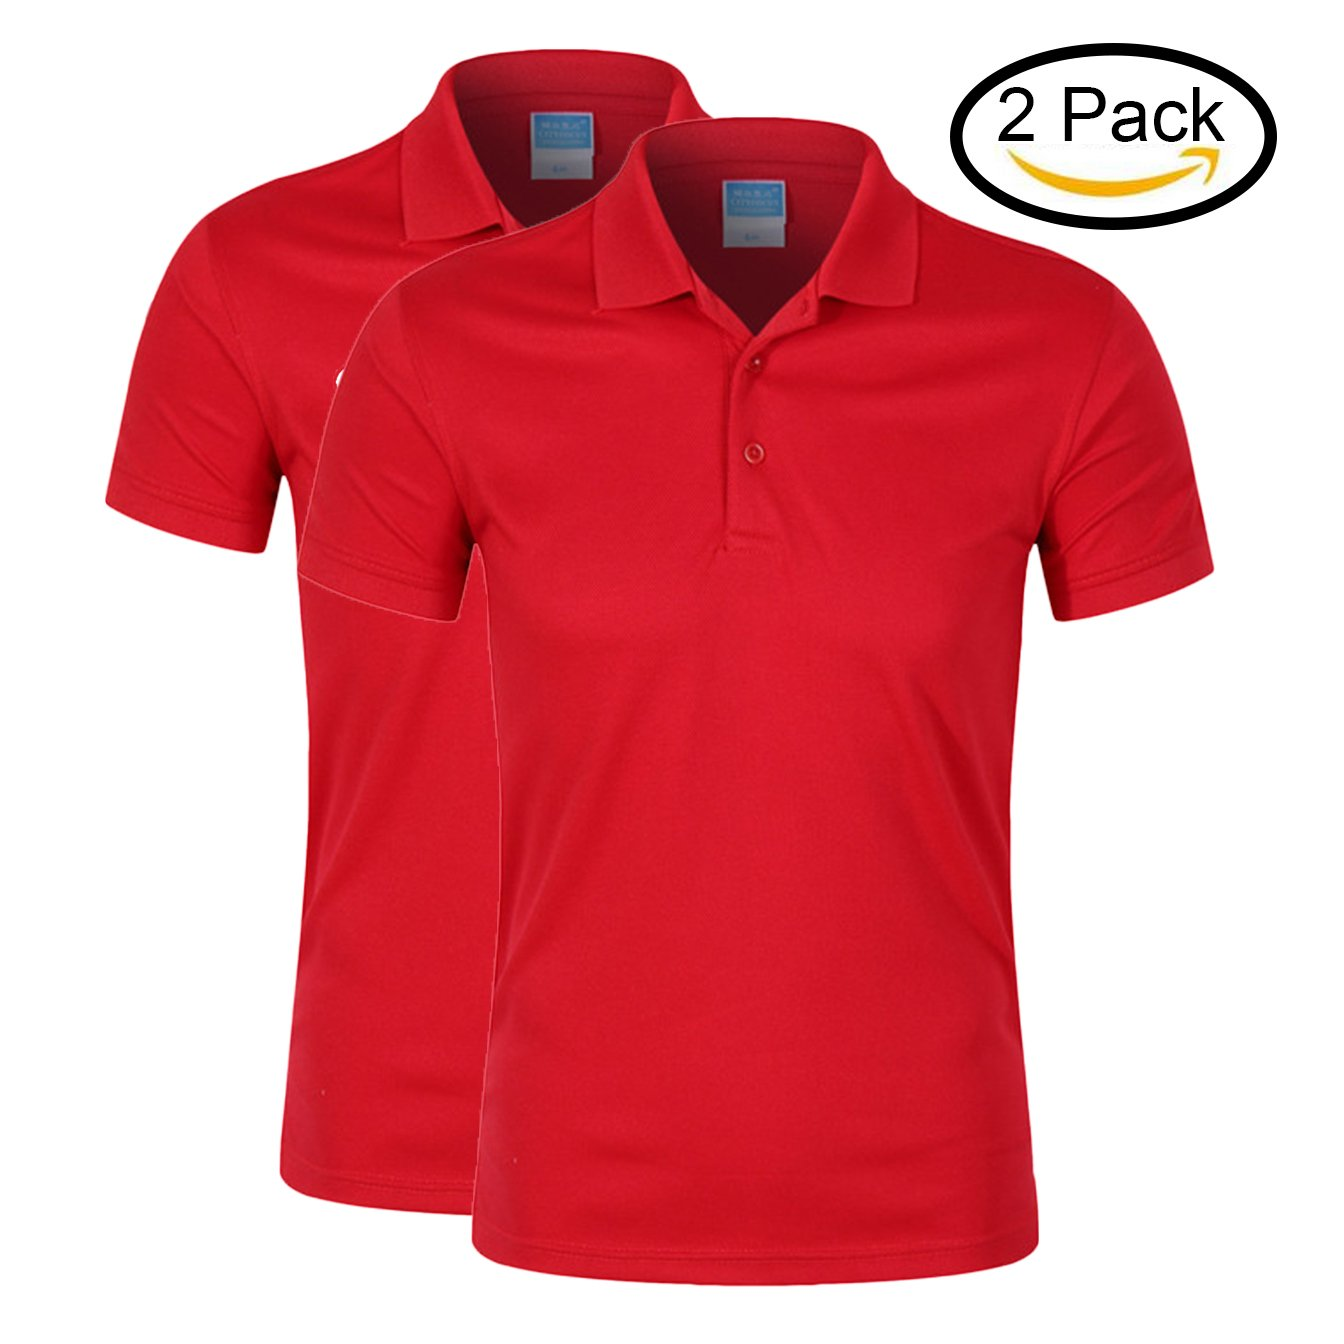 Averywin Women's Golf Polo Shirts Short Sleeve Dry-Fit 3-Button Sports Outdoors Tops T Shirts Pack of 2 (Red (Pack of 2), XL / 42.52'' Bust)